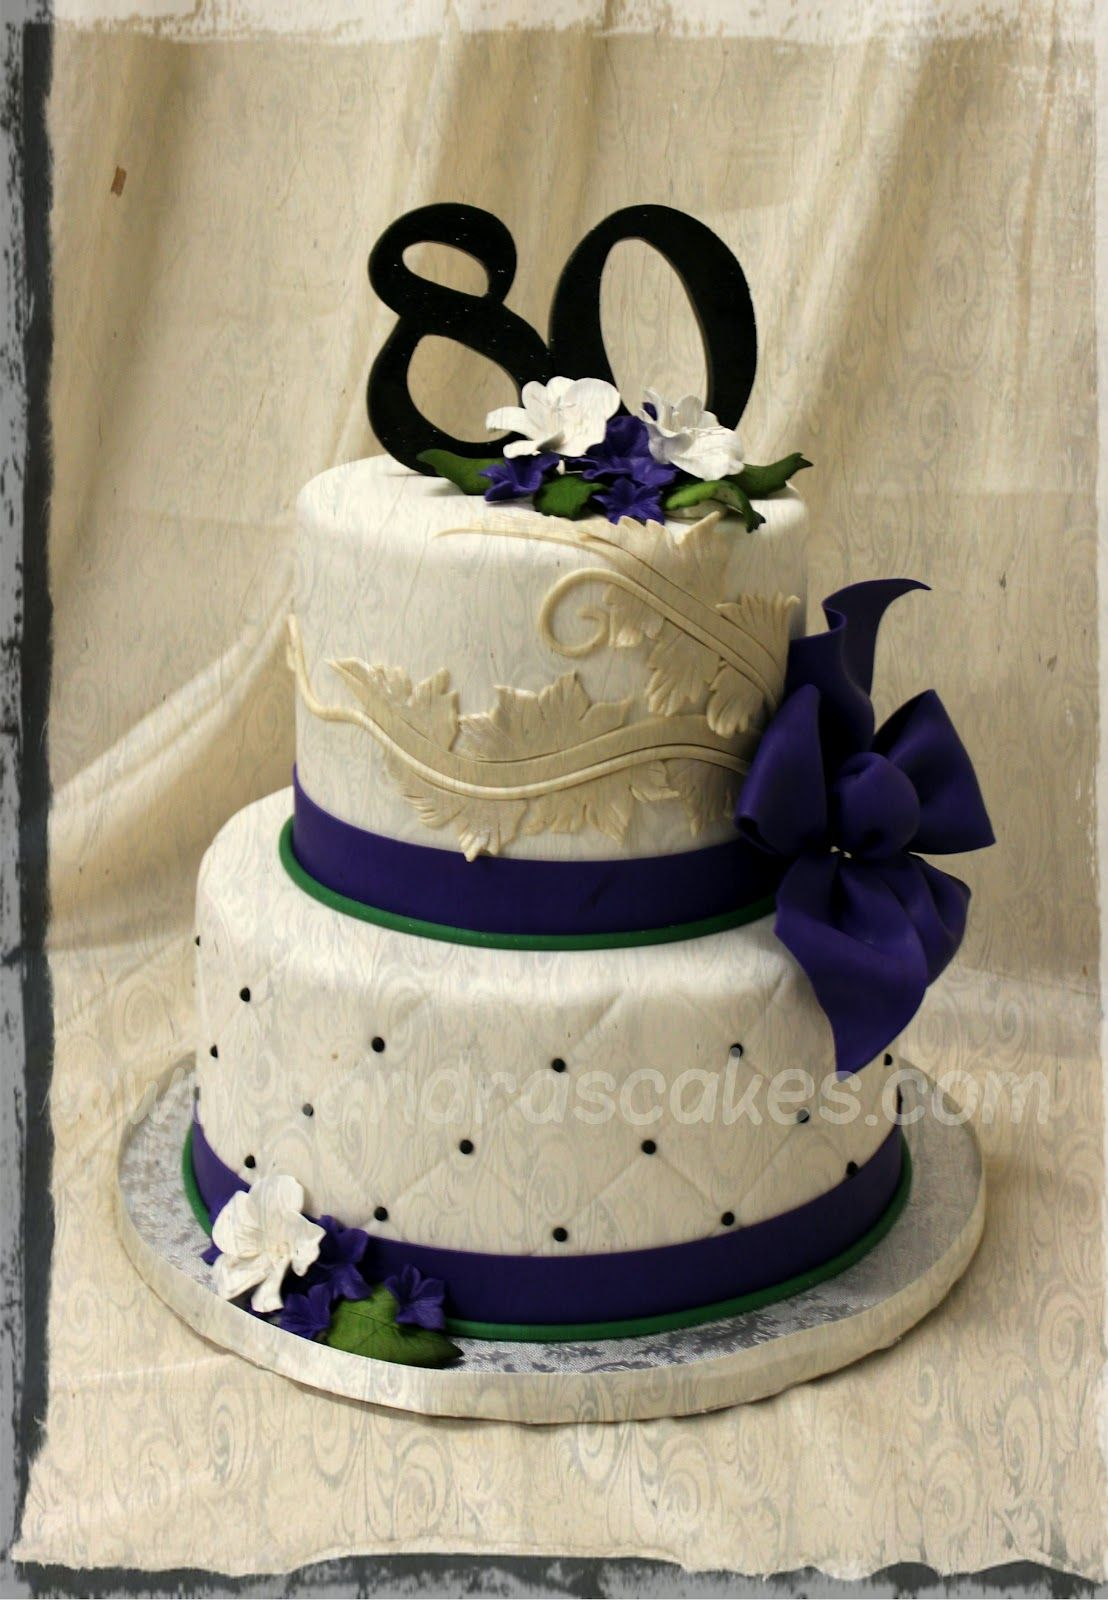 Elegant 80th Birthday Cakes